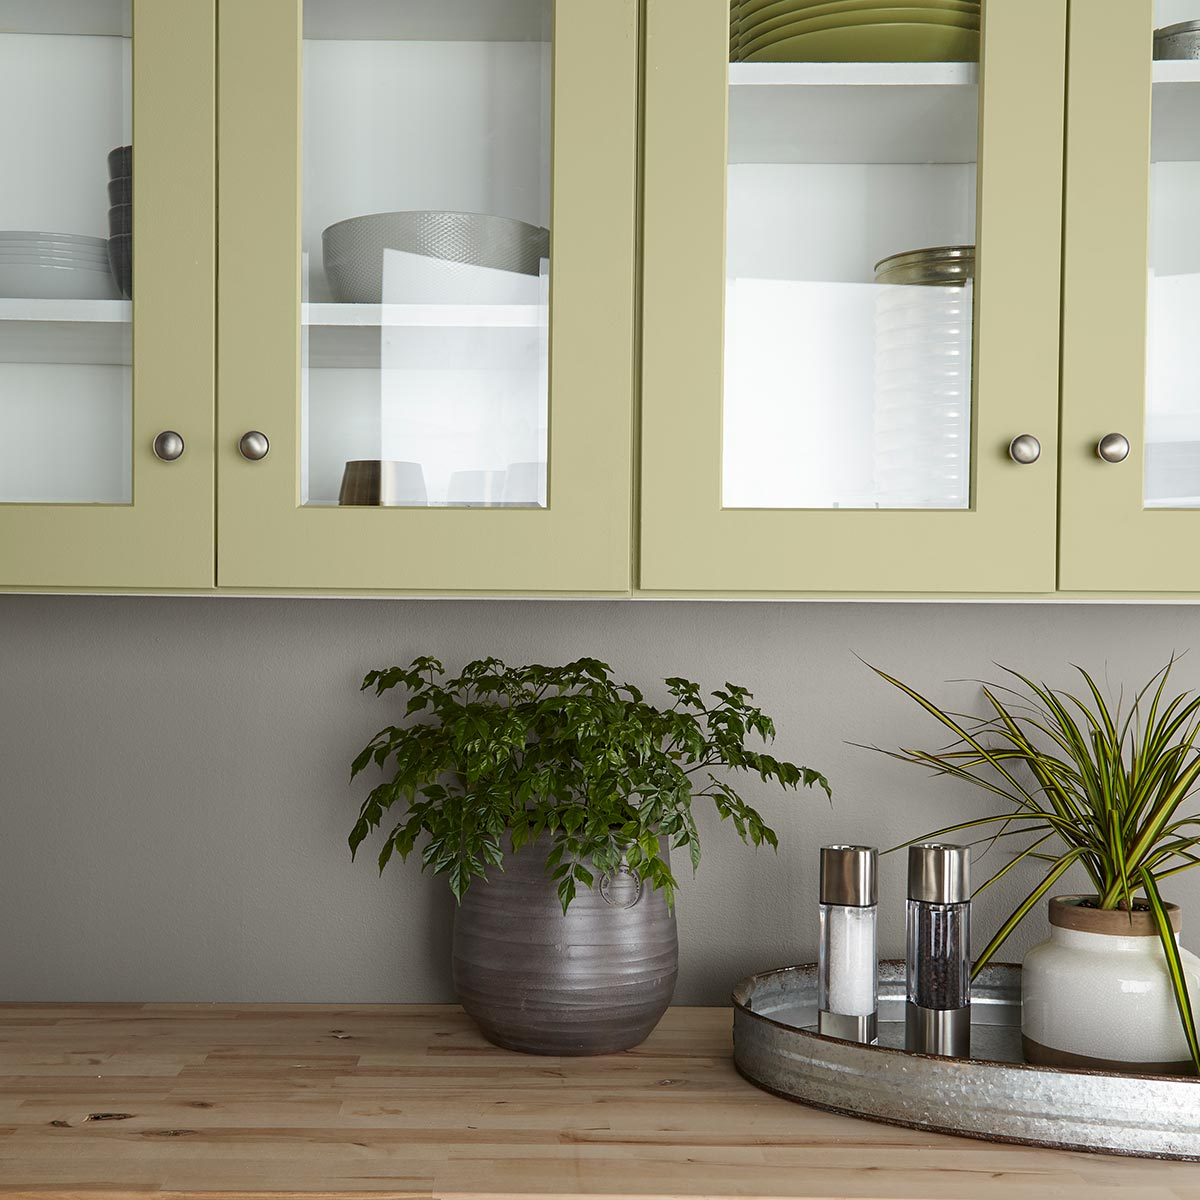 Behr Back to Nature paint color is the 2020 Color of the year, bringing a calm yellowy-green option with a natural vibe! #paintcolor #greenpaint #calmpaintcolor